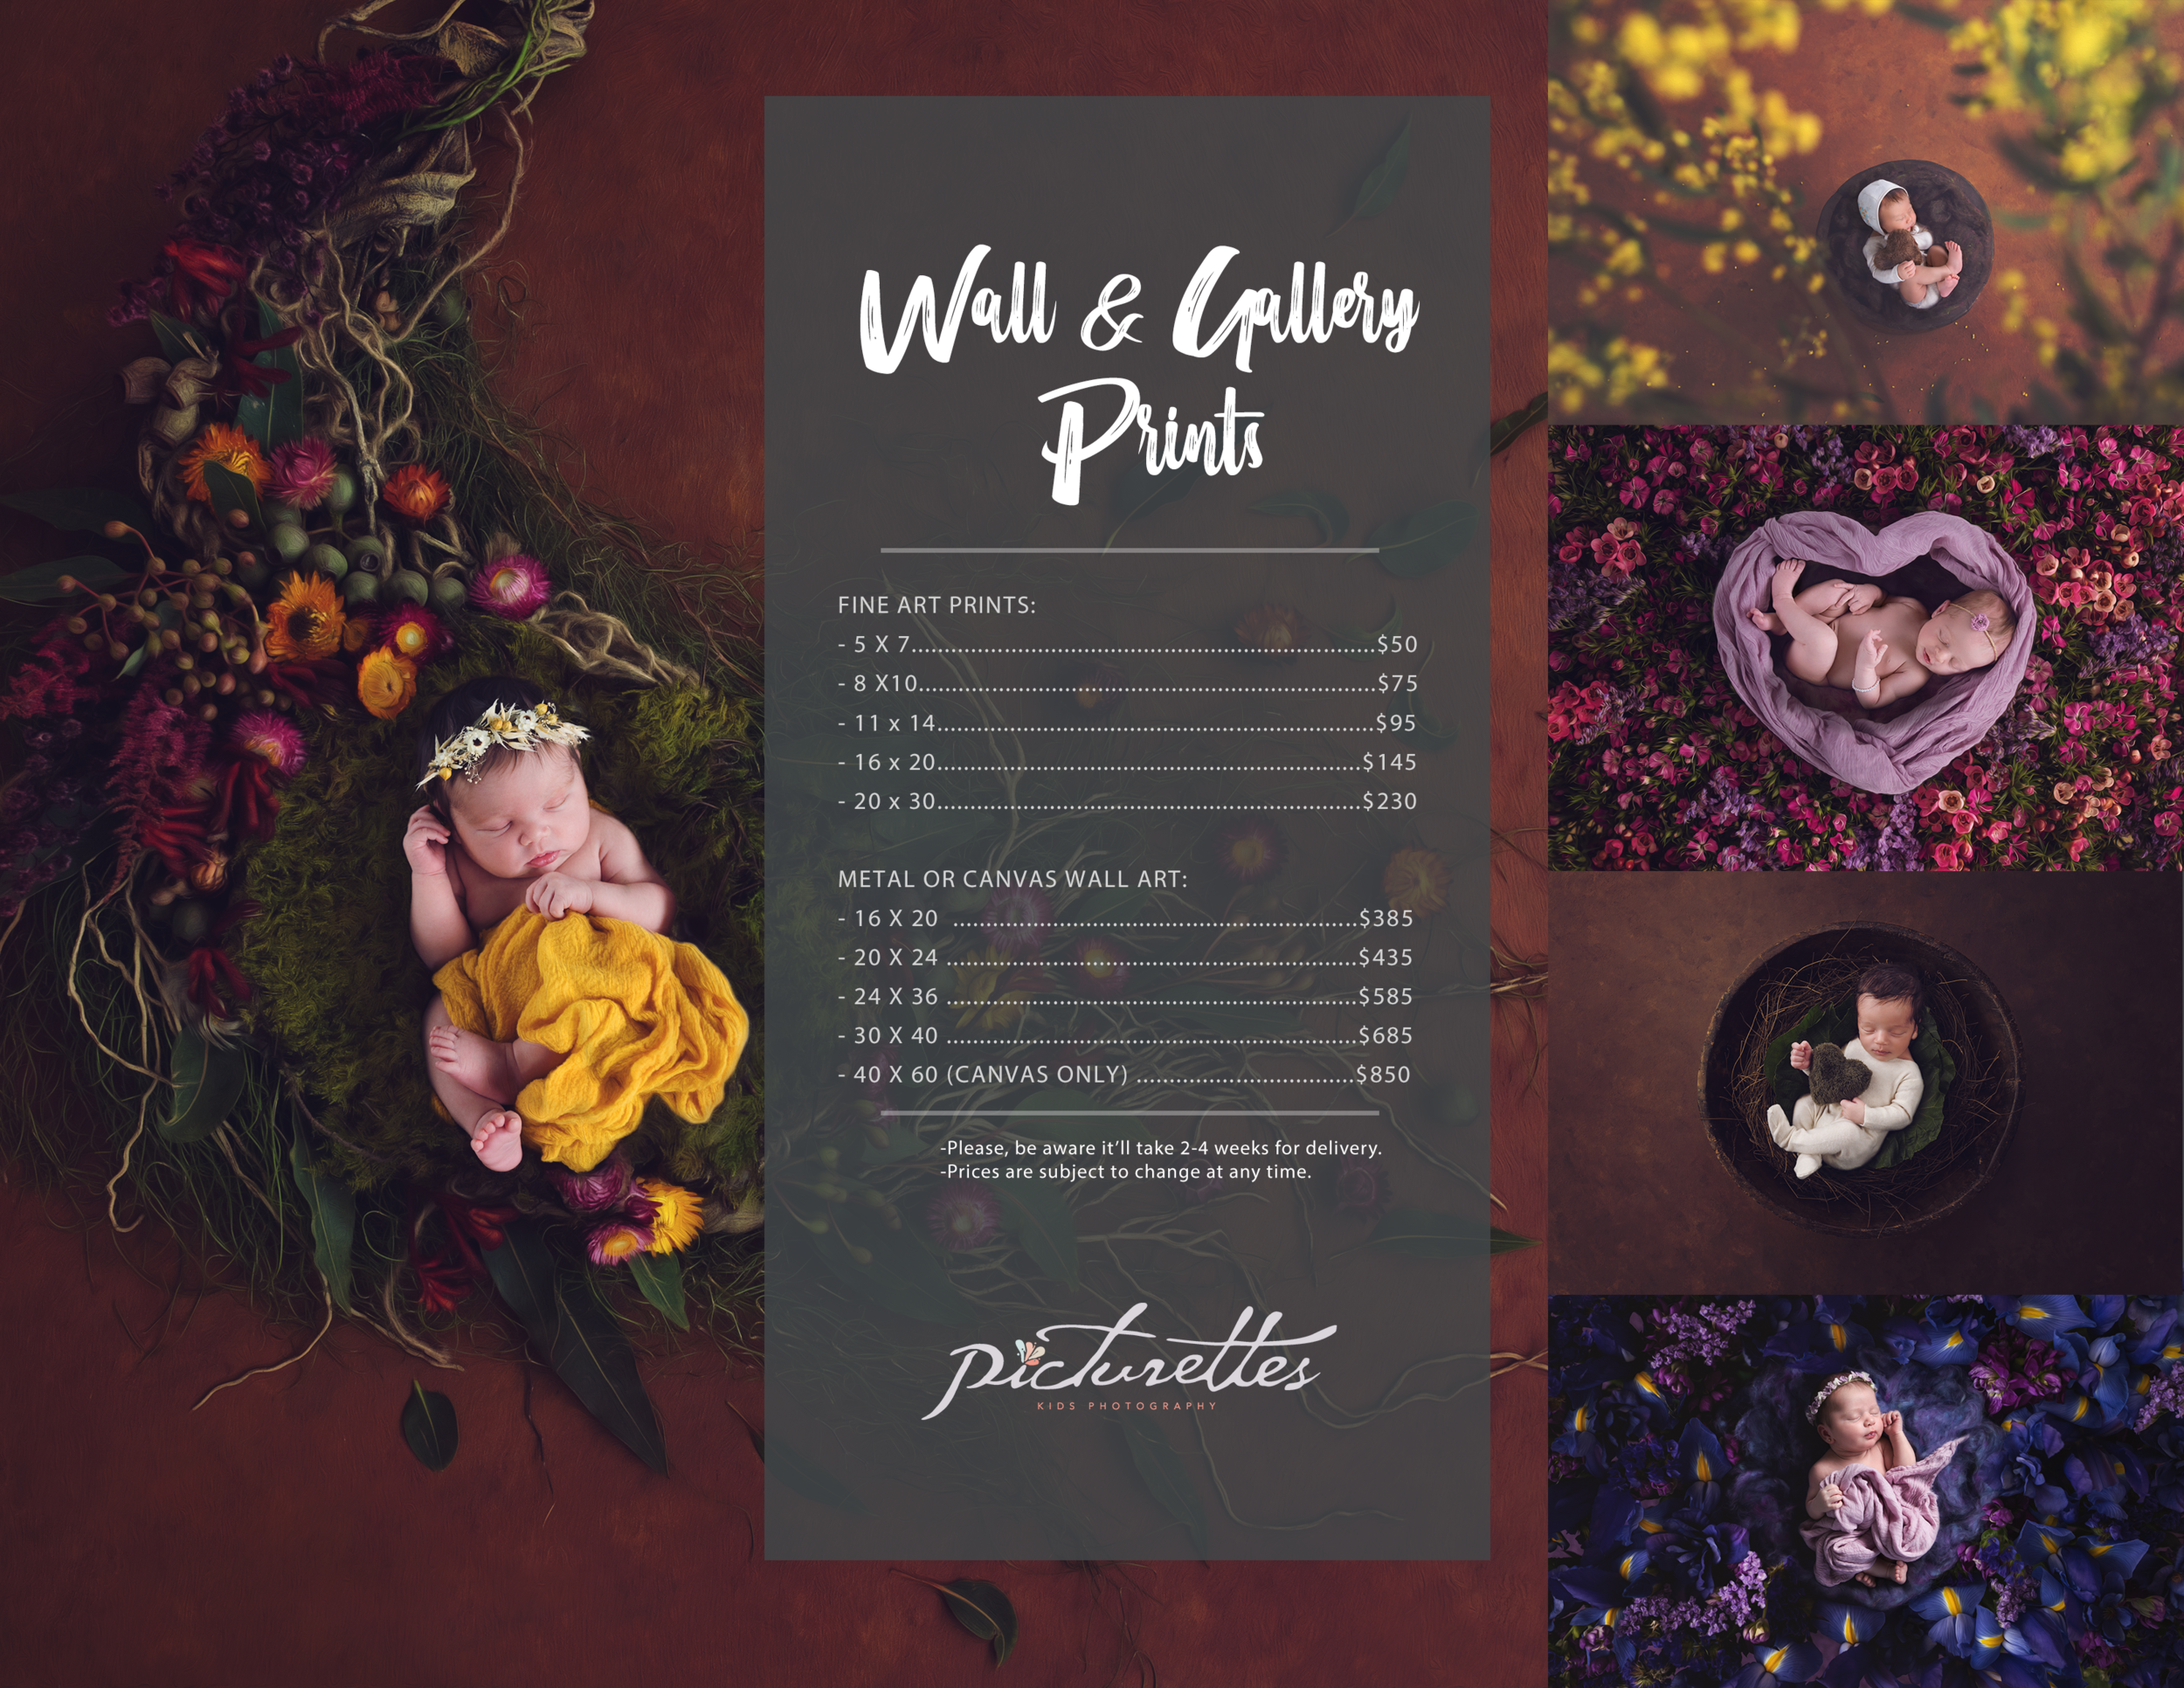 WALL_GALLERY_PRINTS.png